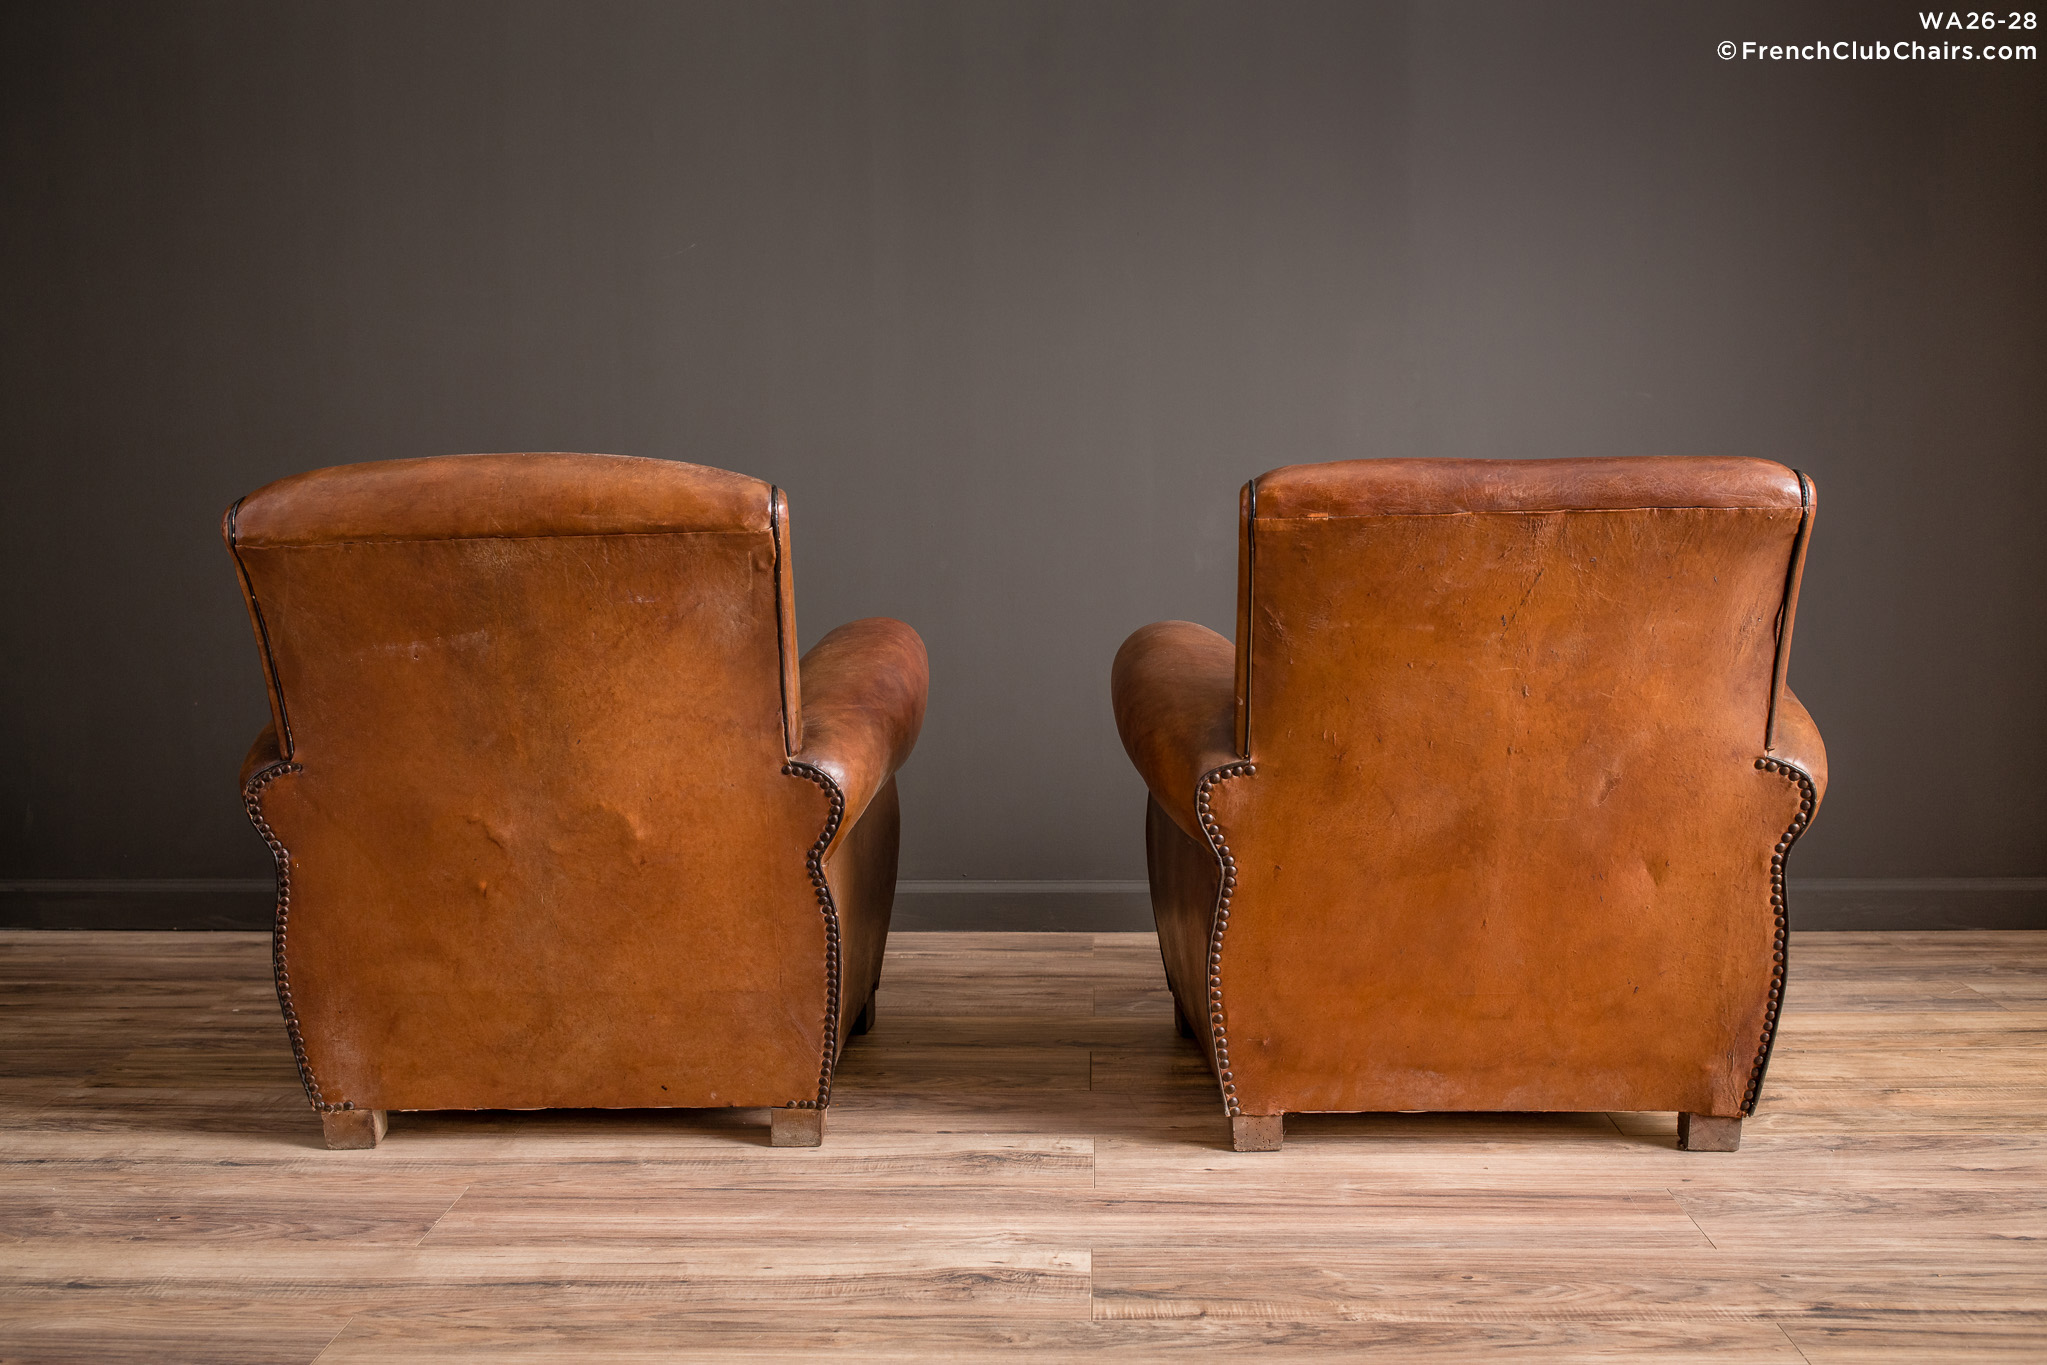 WA_26-28_Sursense_Slope_Pair_R_2BK-v01-williams-antiks-leather-french-club-chair-wa_fcccom